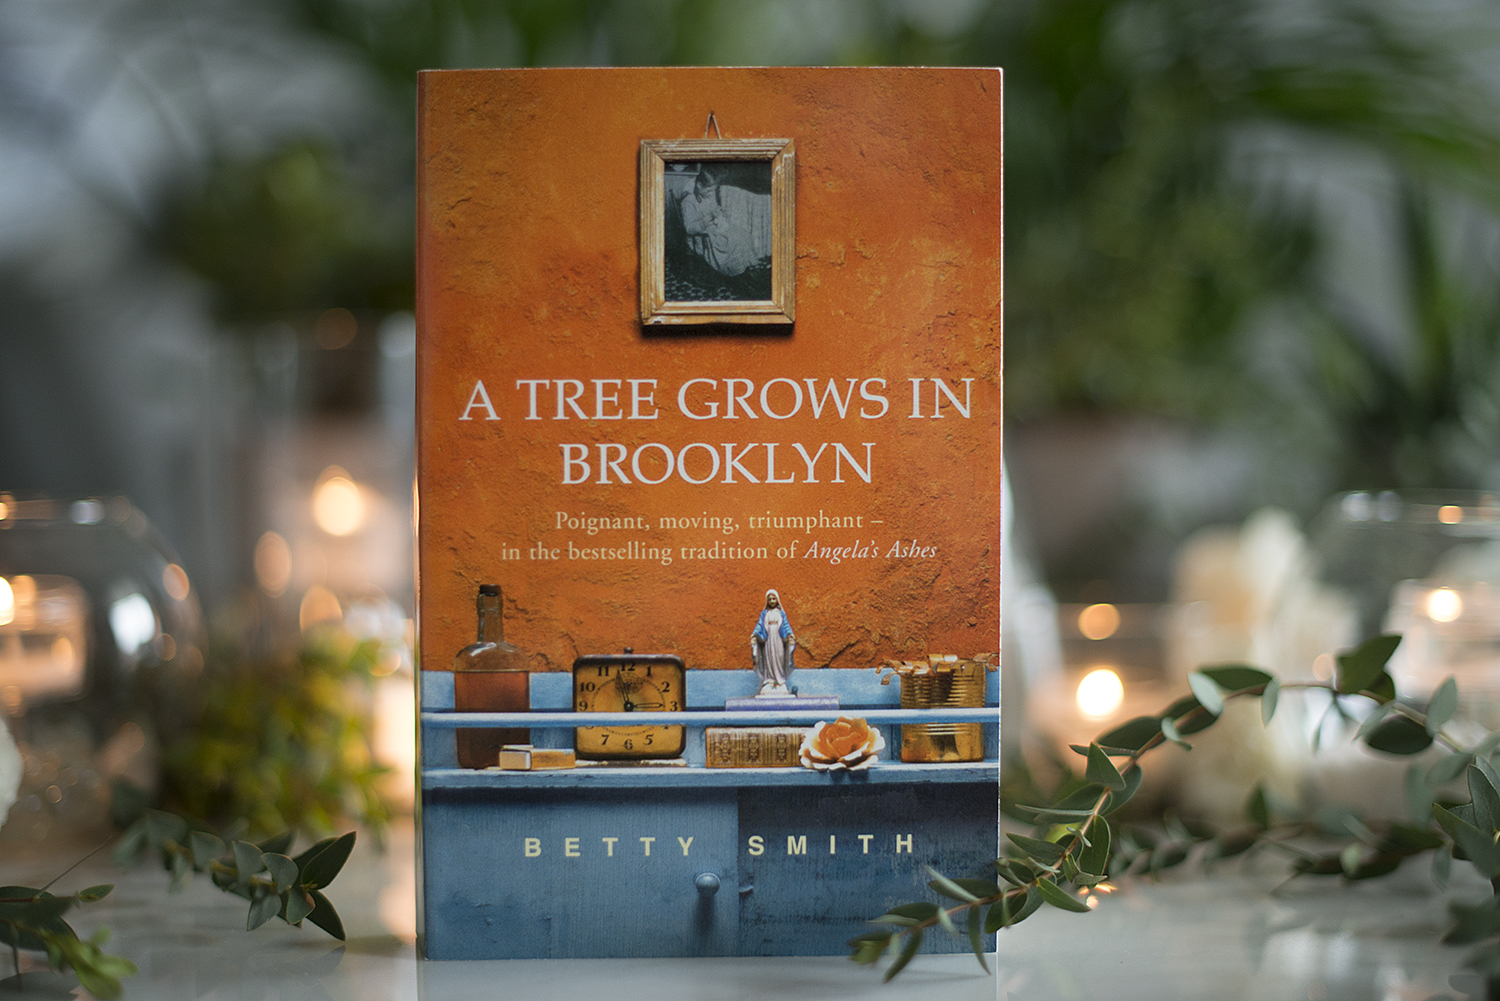 a tree grows in brooklyn assignment college essays The tree is described in the novel as a continual symbol of growth: there's a tree that grows in brooklyn, some people call it the tree of heaven no matter where its seed falls, it makes a tree.